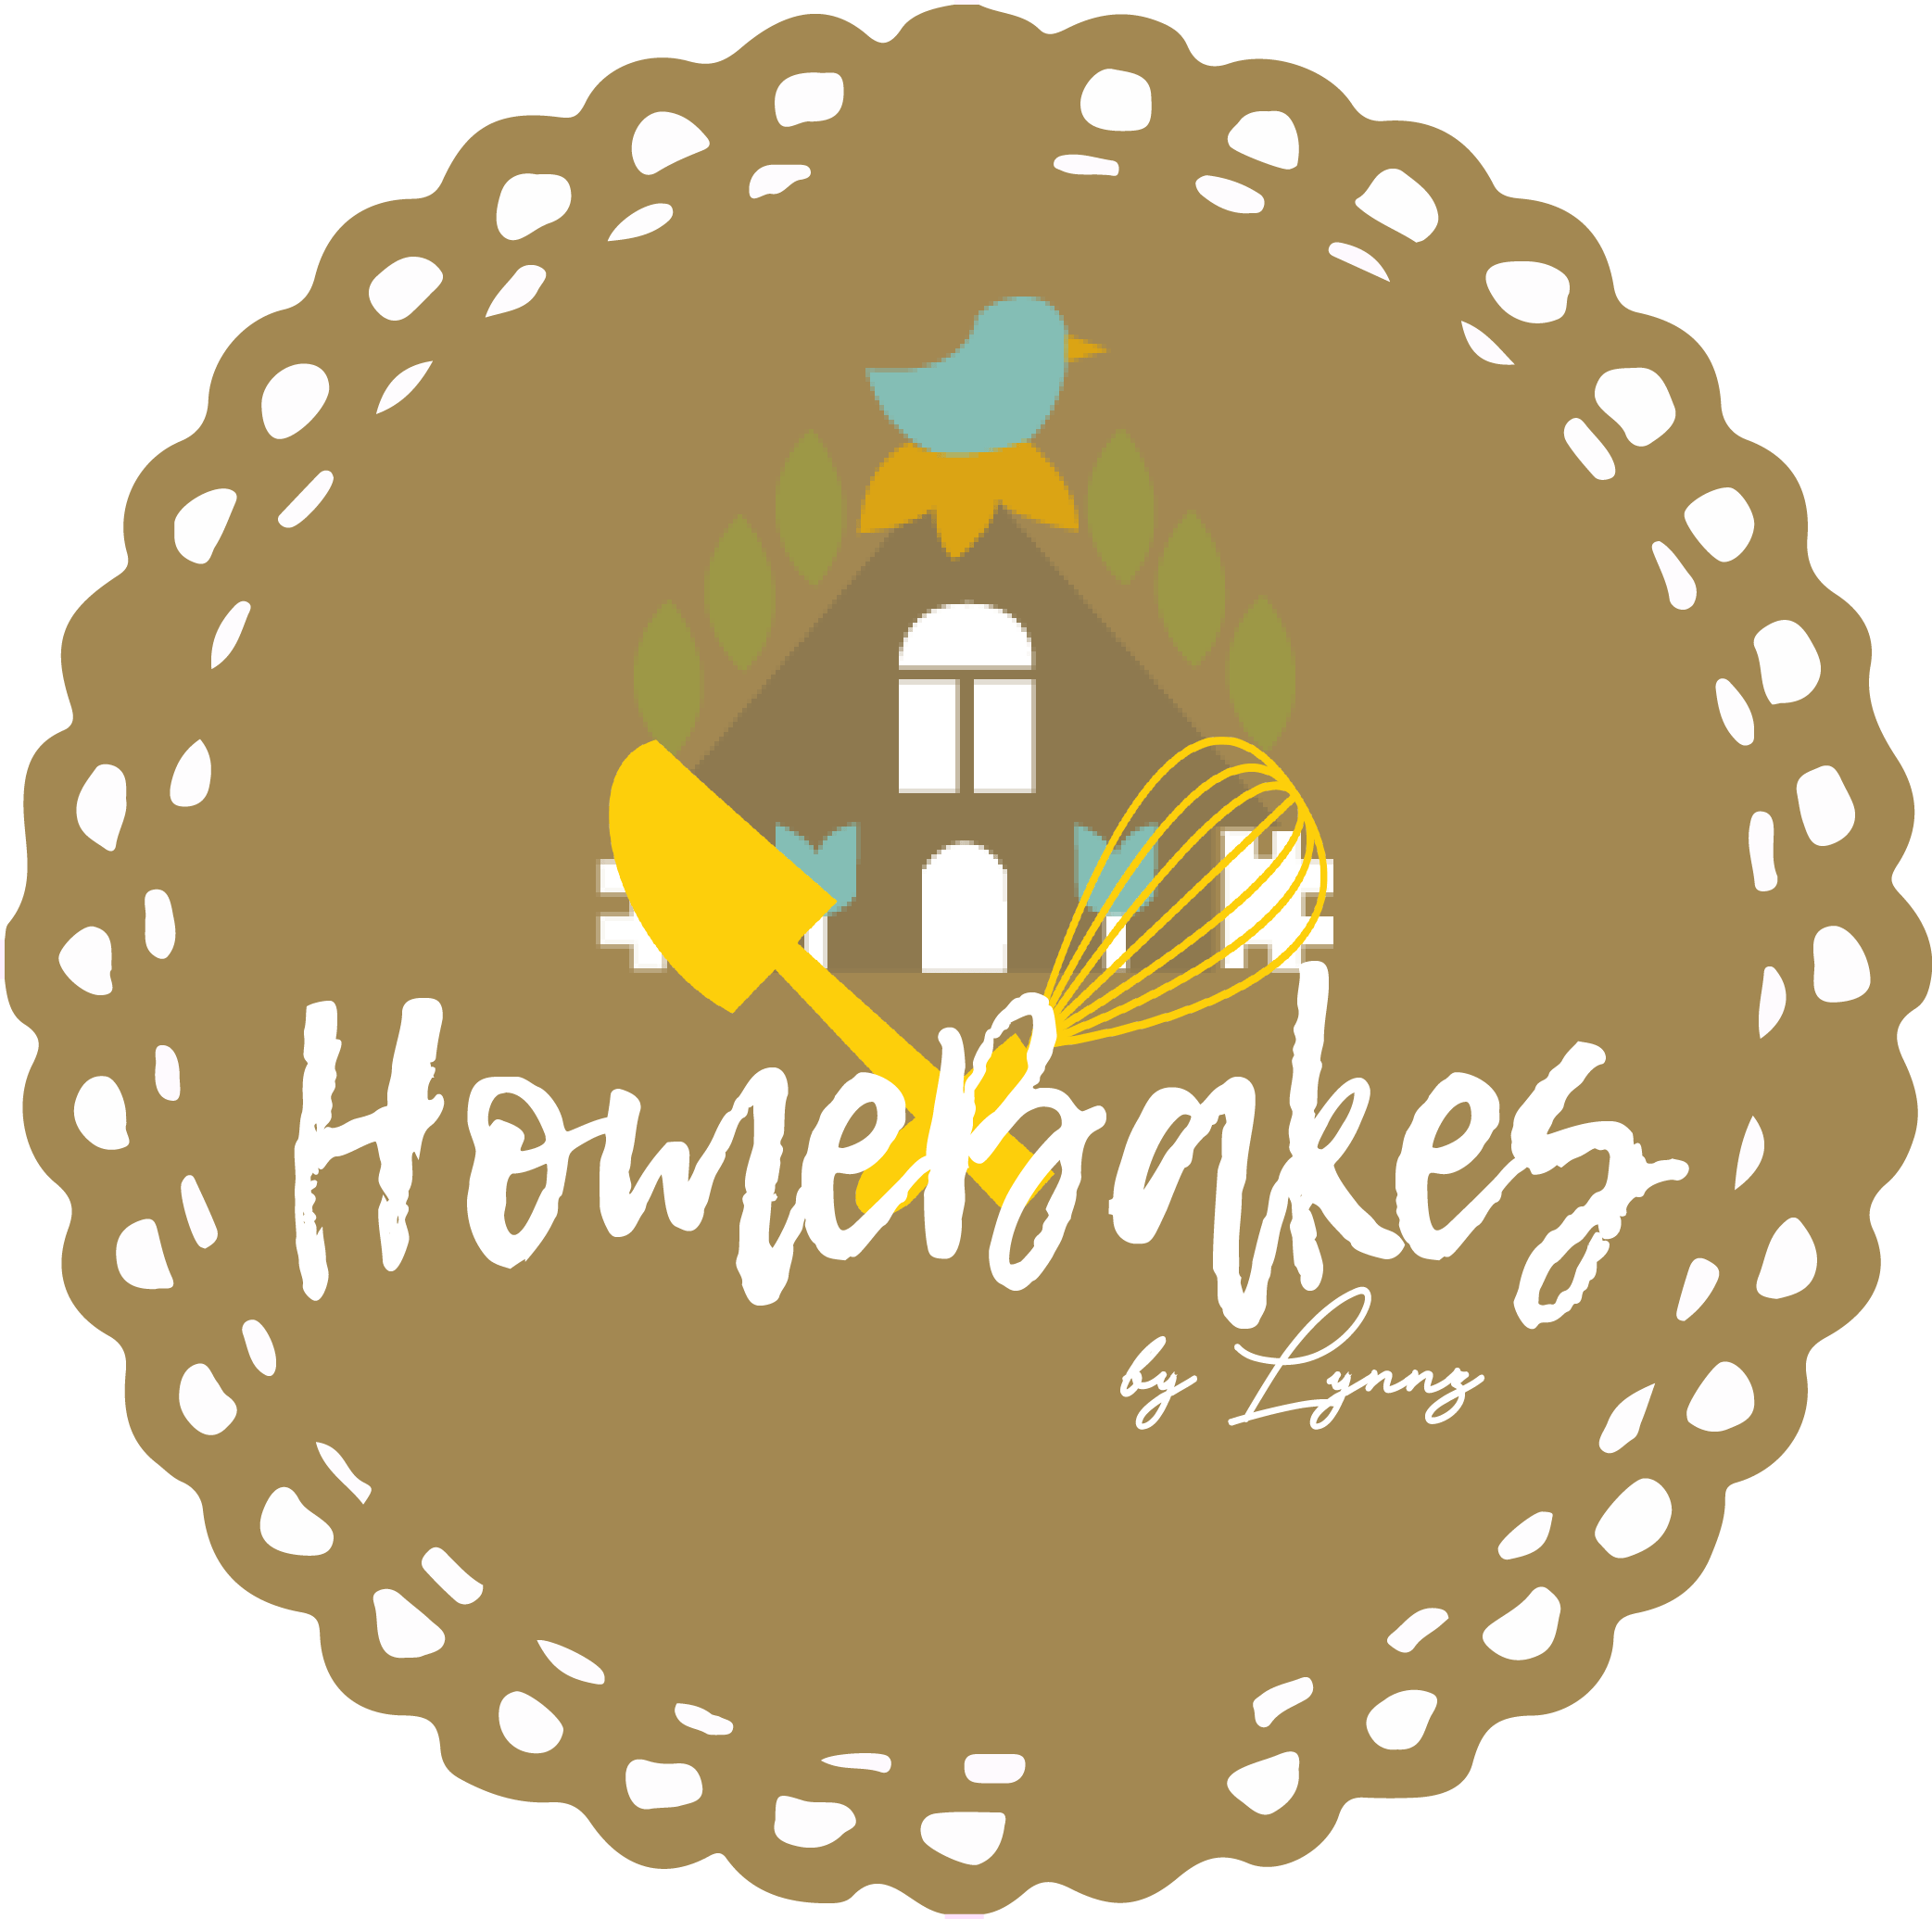 HomeBakes by Lynnz